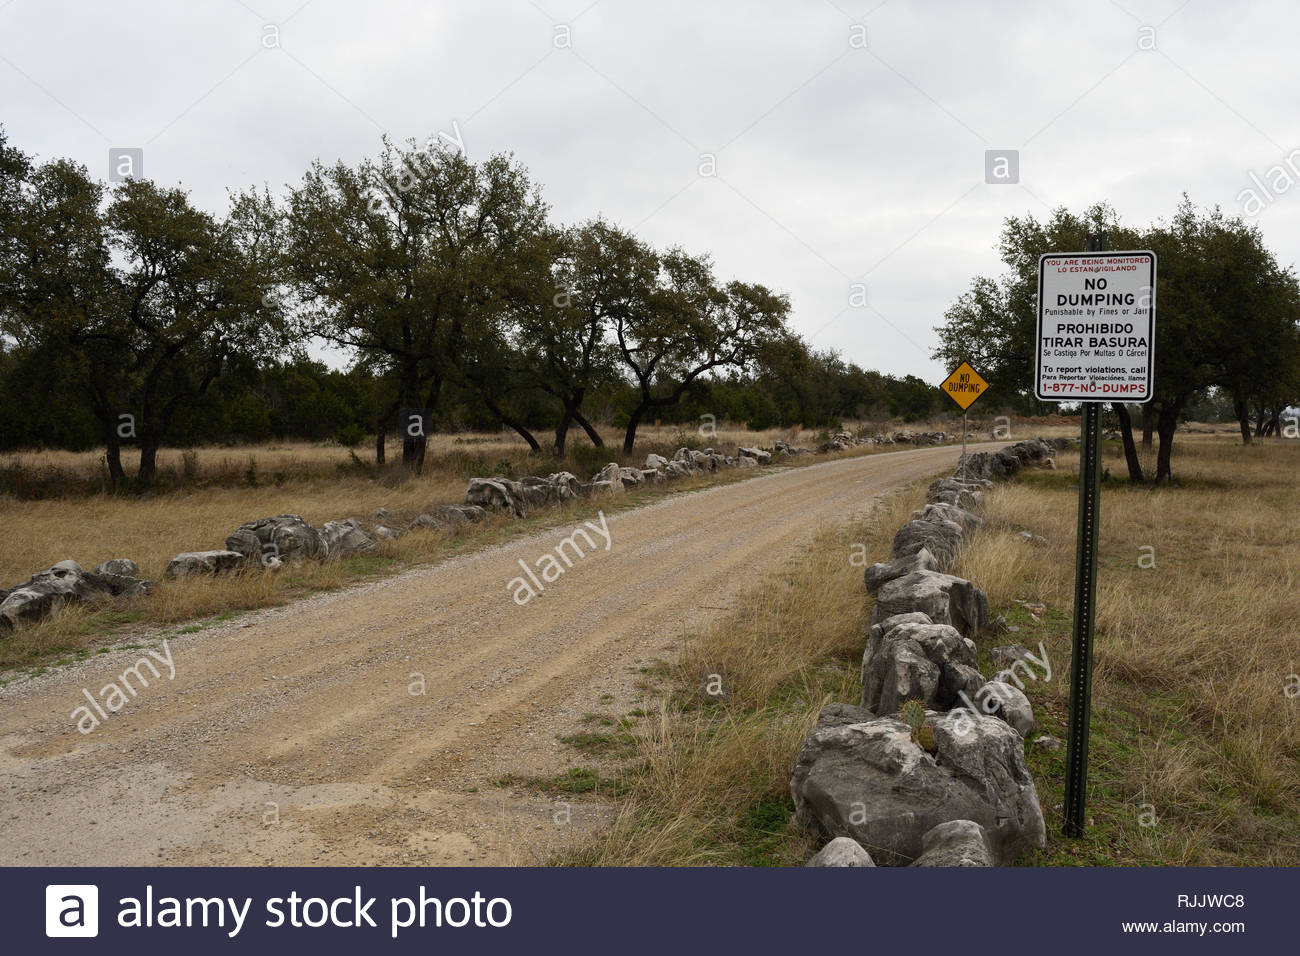 Texas Hill Country Gravel Road with No Dumping Signs. Two No Dumping Signs on Gravel Road with Stone Walls and Live Oak Trees. No Dumping No Dumping - Stock Image